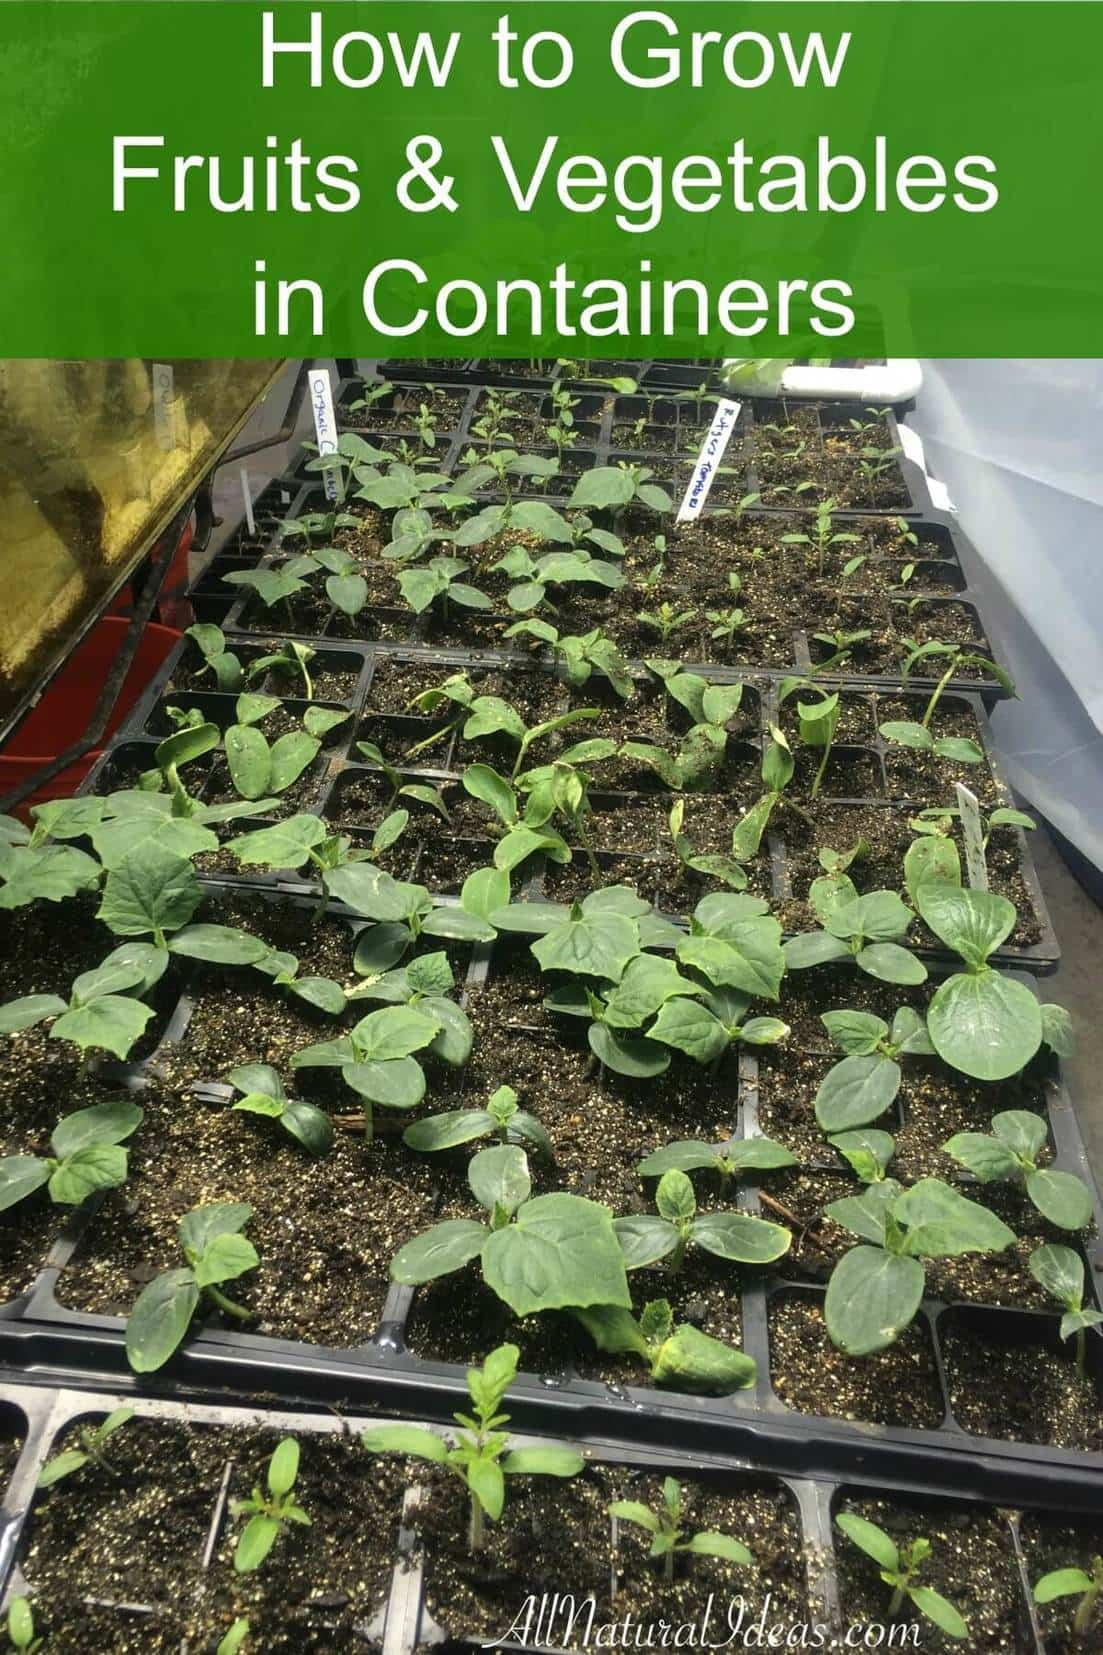 How To Grow Fruits And Vegetables In Containers All